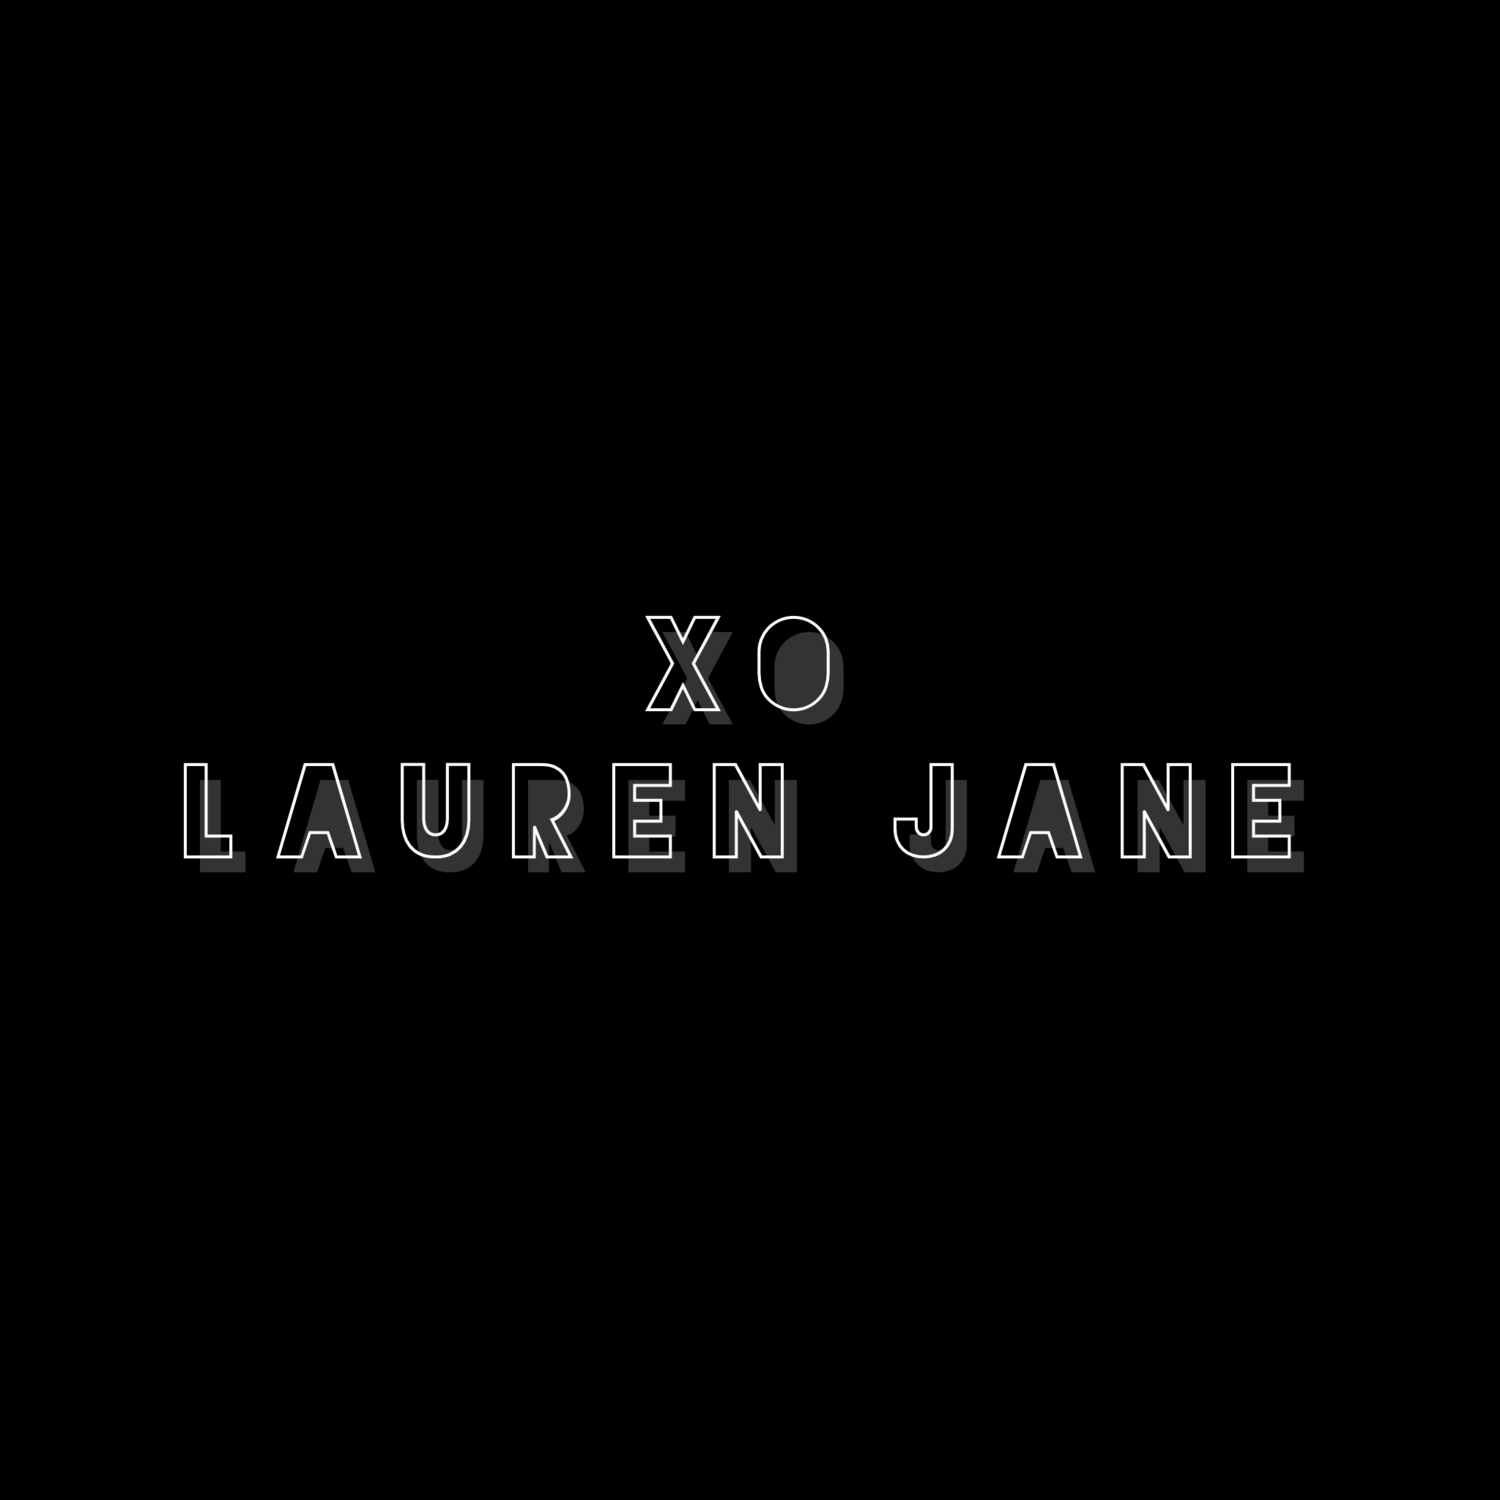 XO LAUREN JANE